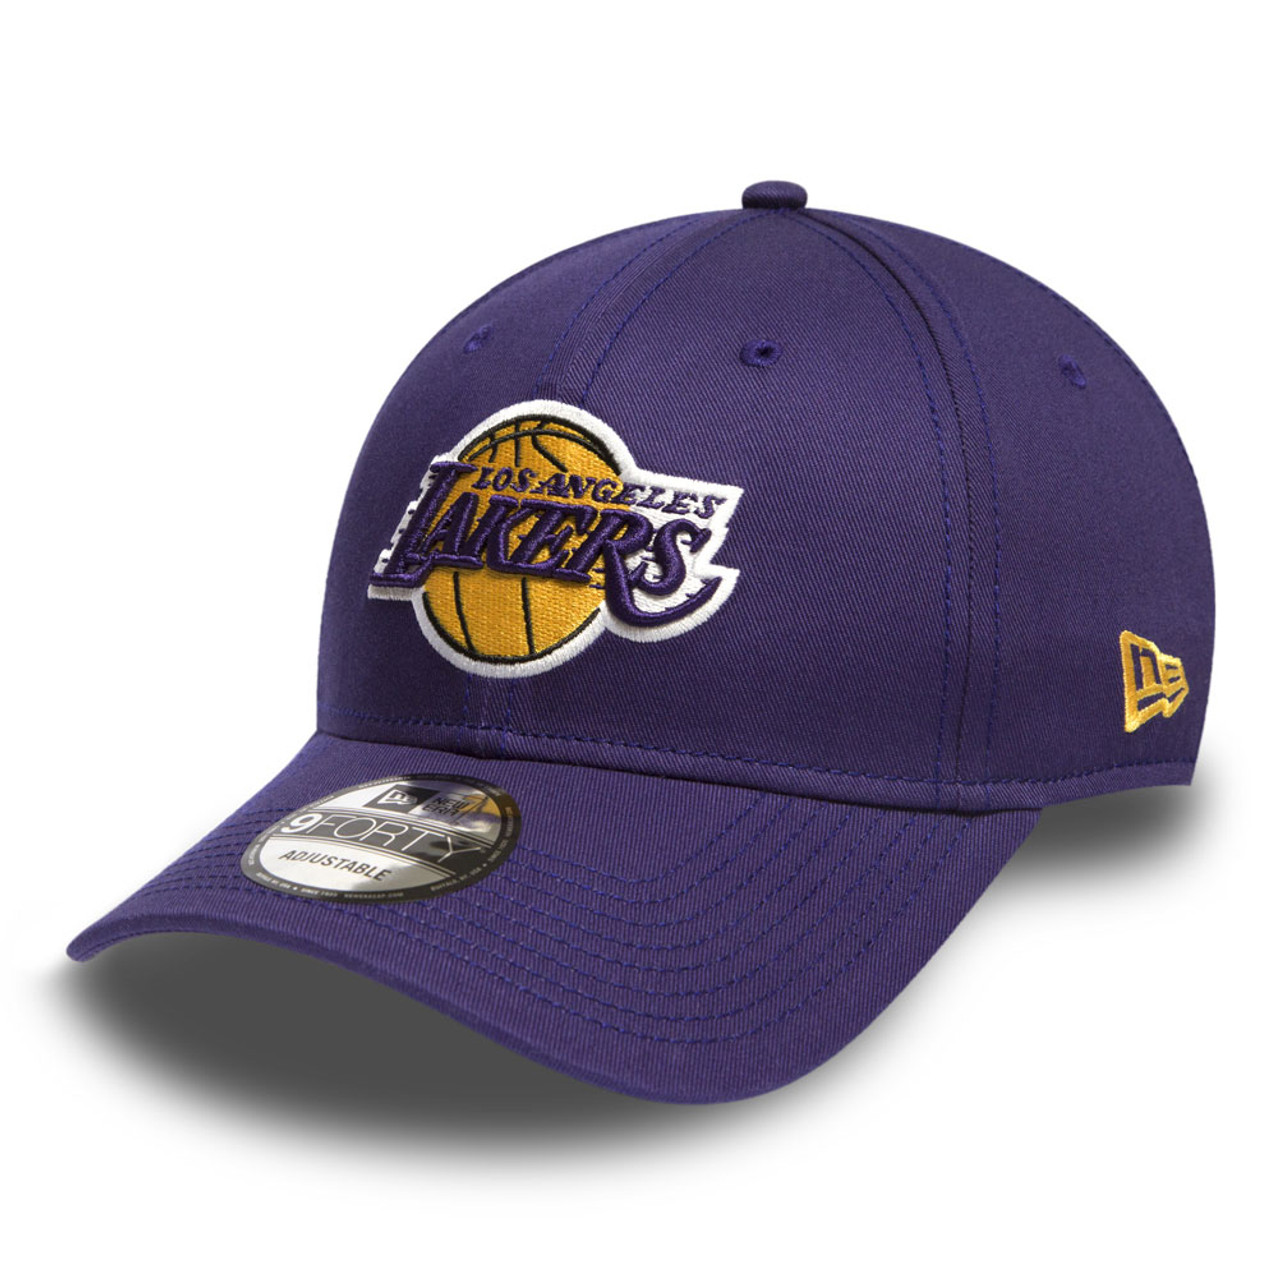 huge selection of c6acb a72ff 11405605 lakers 940  22559.1526290606.jpg c 2 imbypass on